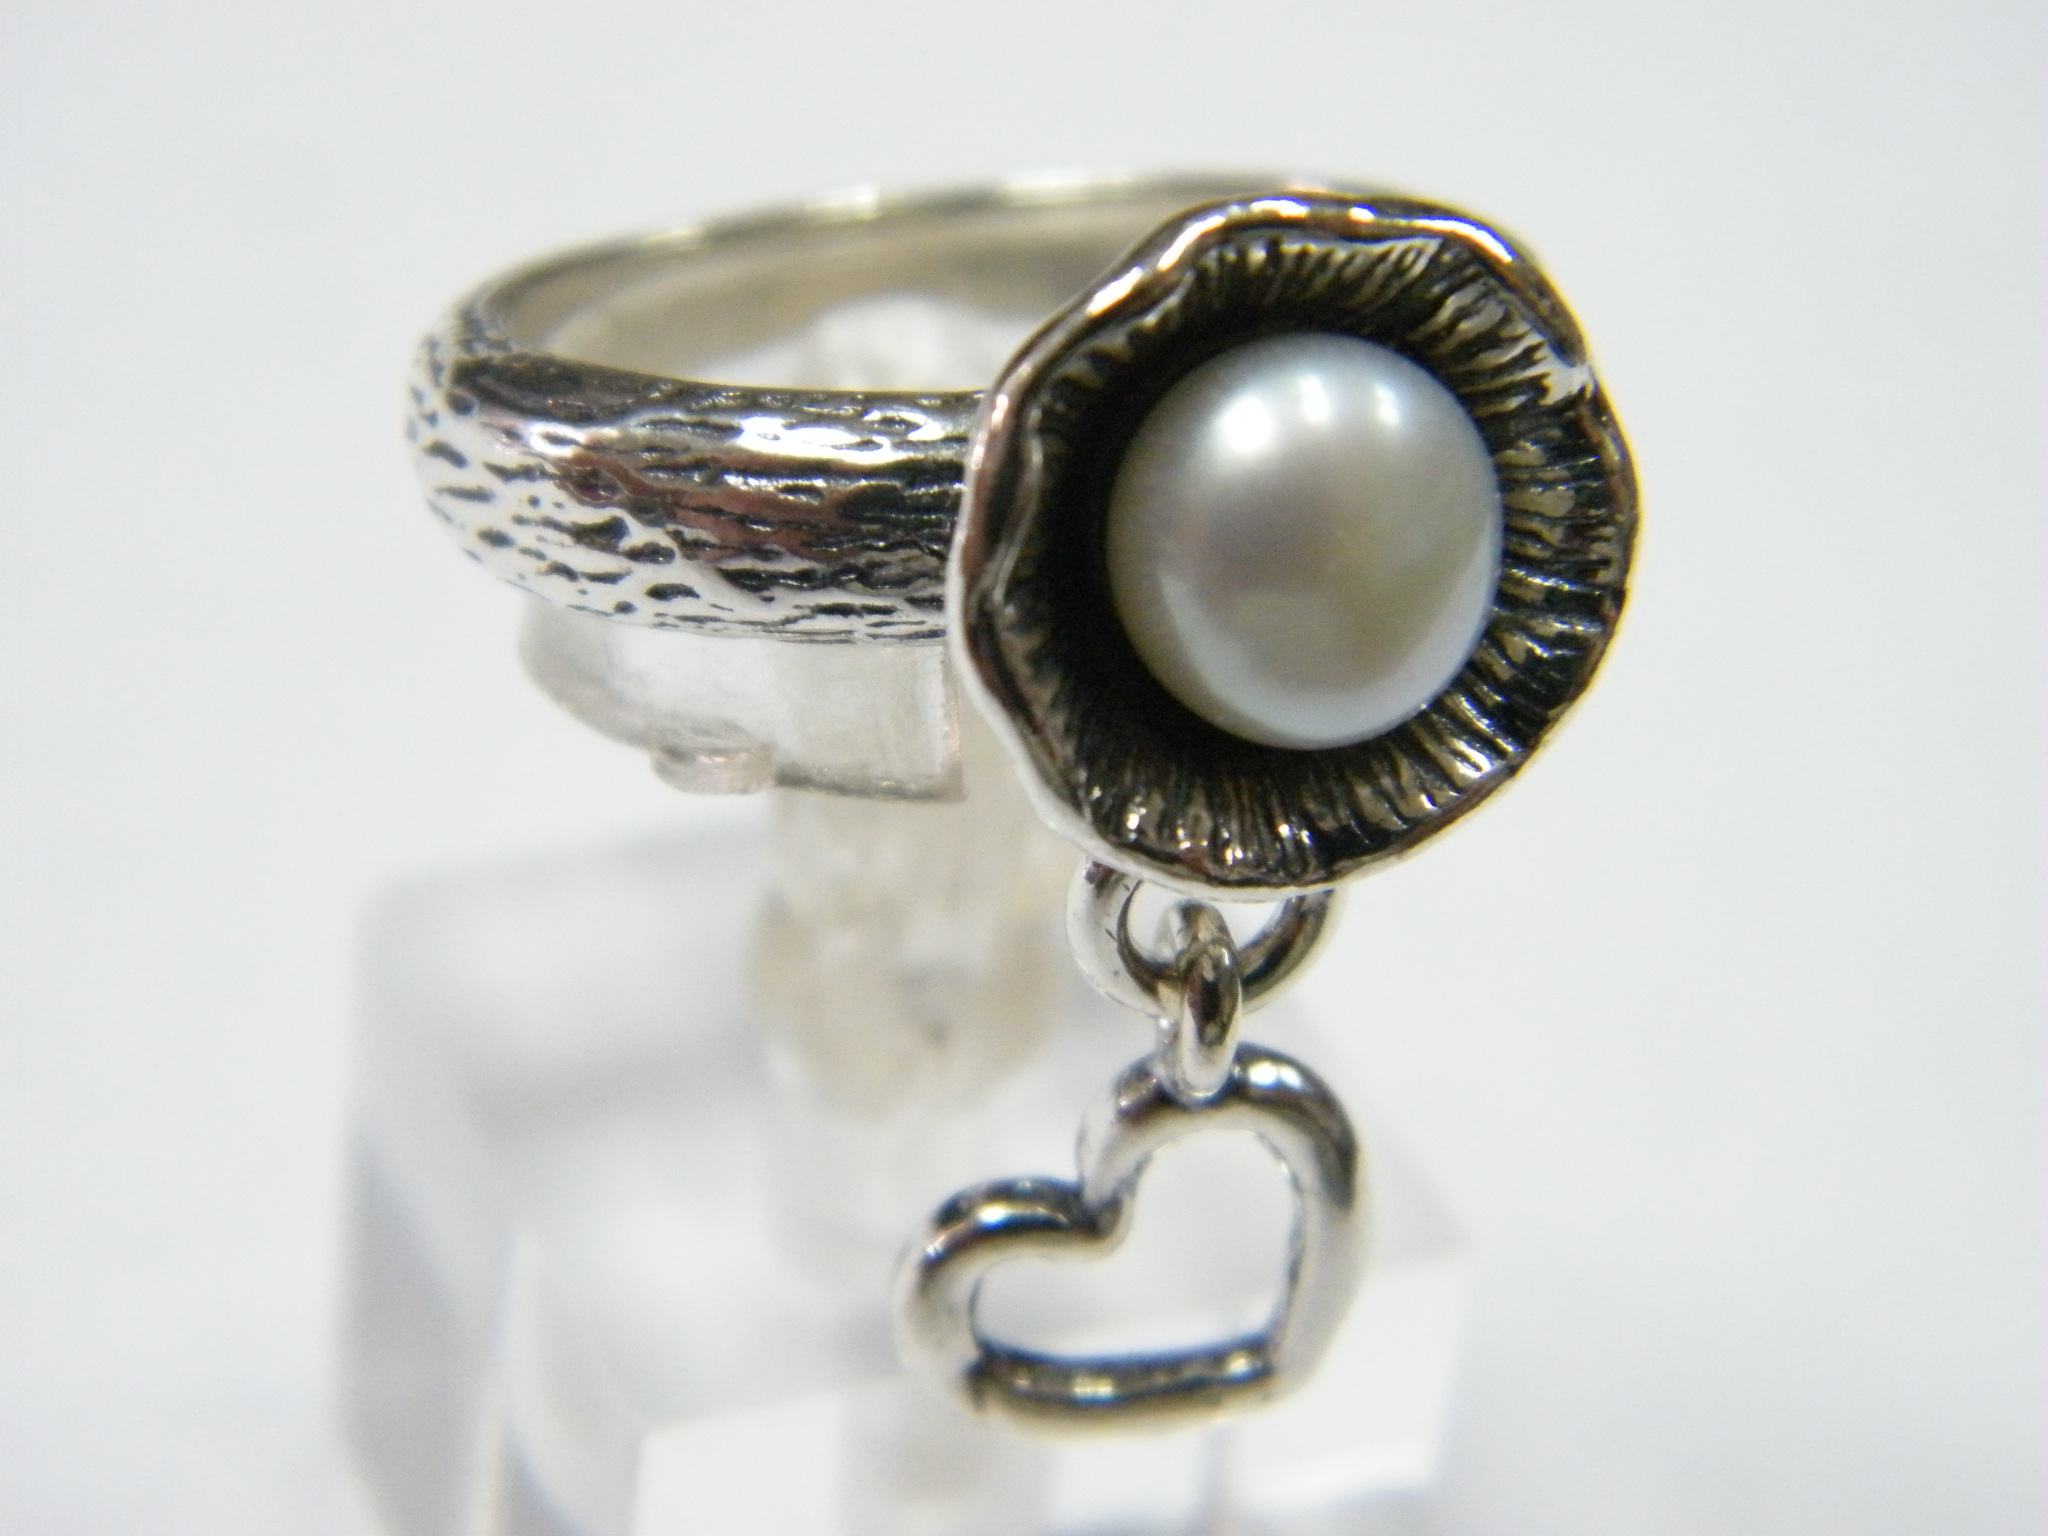 New-SHABLOOL-Ring-Handmade-Jewelry-White-Pearl-925-Sterling-Silver